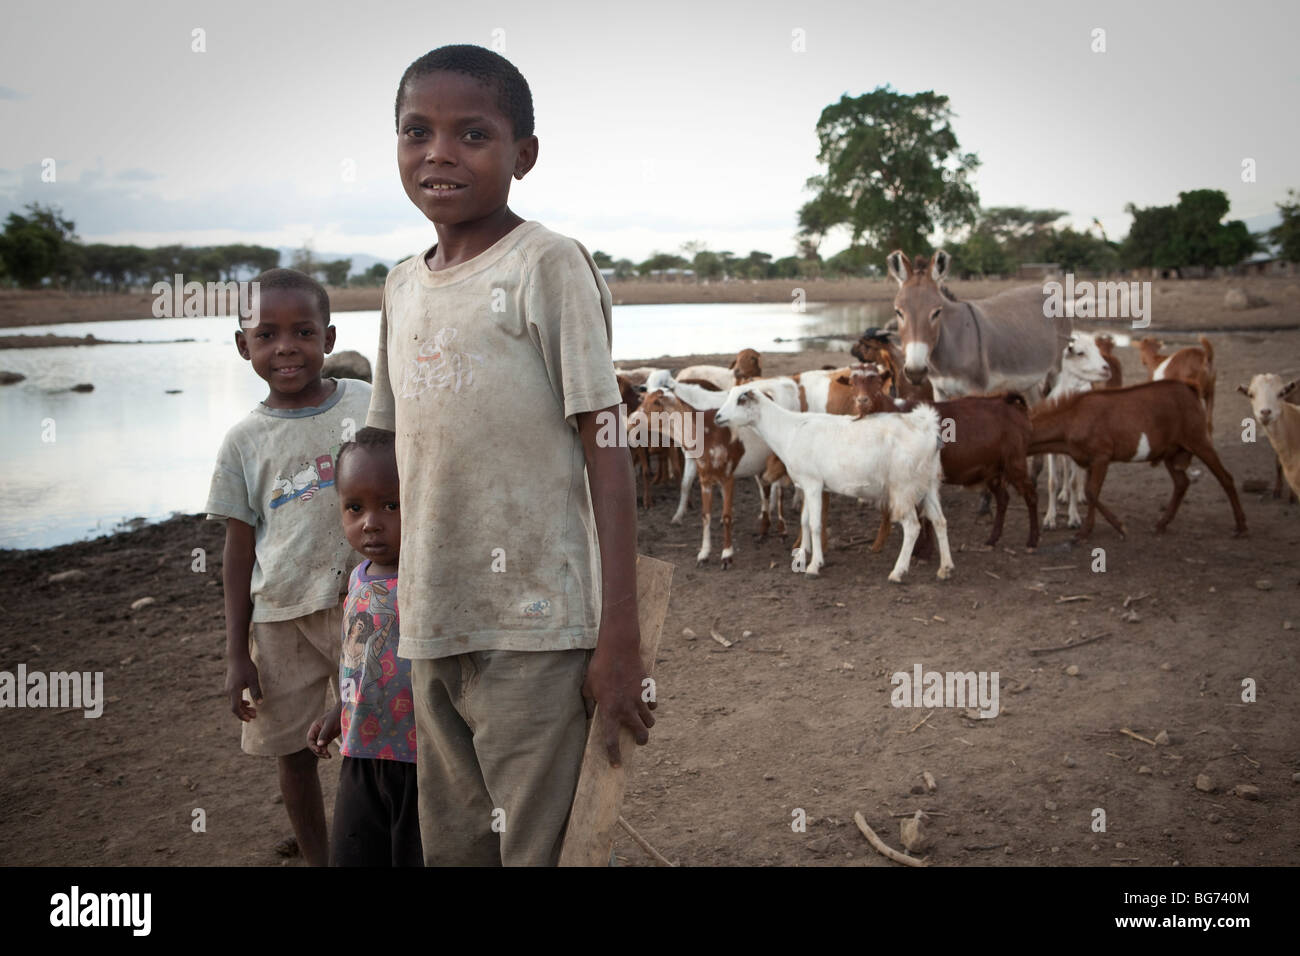 Children stand along a watering hole with their herd of goats in Manyara Region, Tanzania. - Stock Image